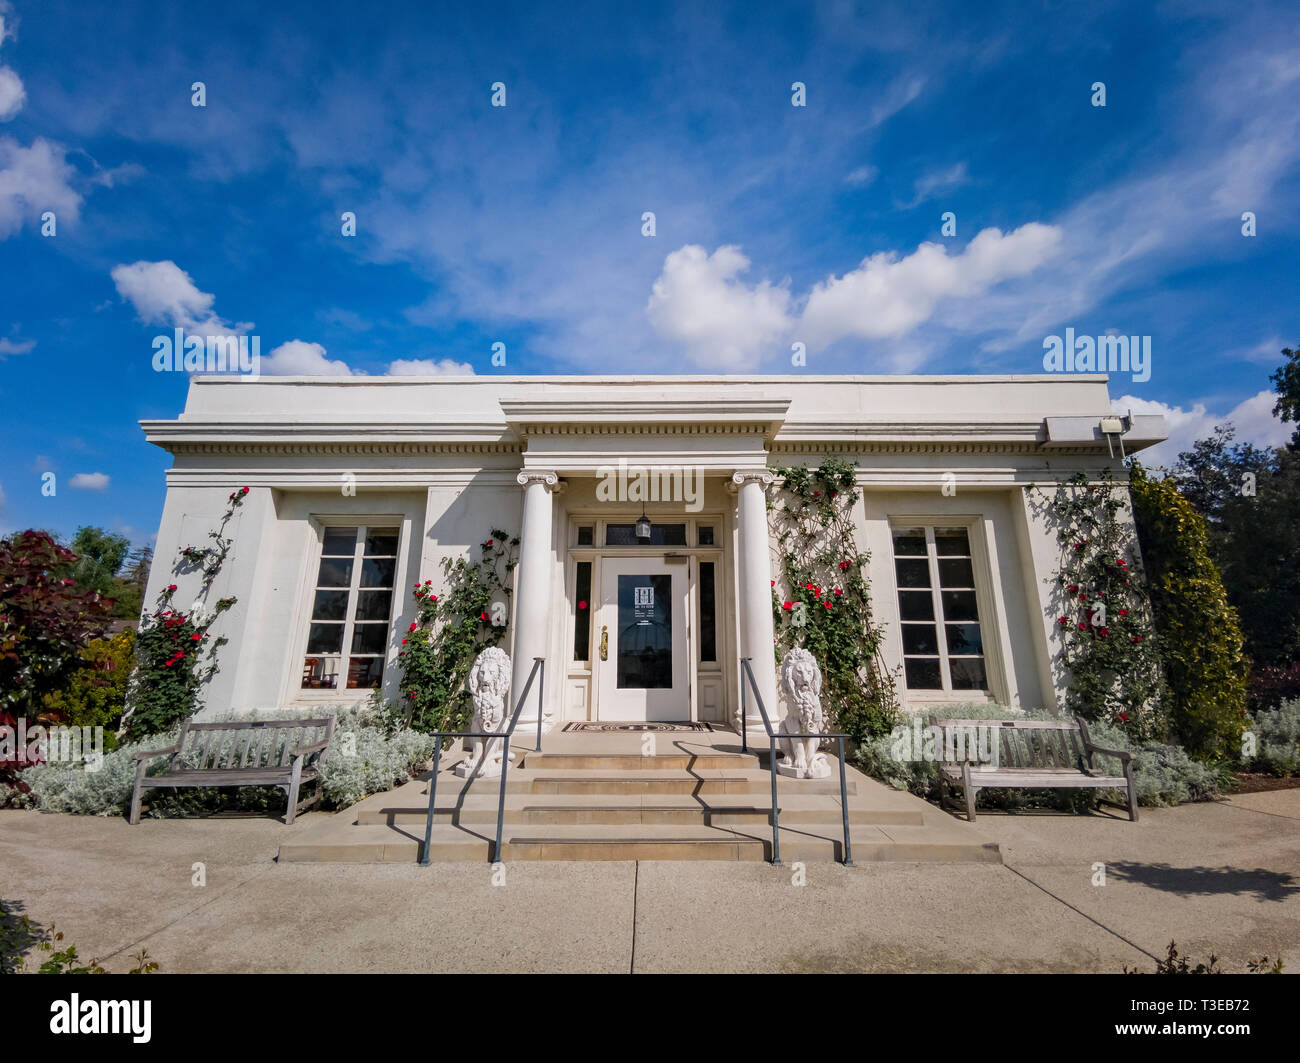 Los Angeles, APR 5: The Tea Room of Huntington Library on APR 5, 2019 at Los Angeles, California - Stock Image